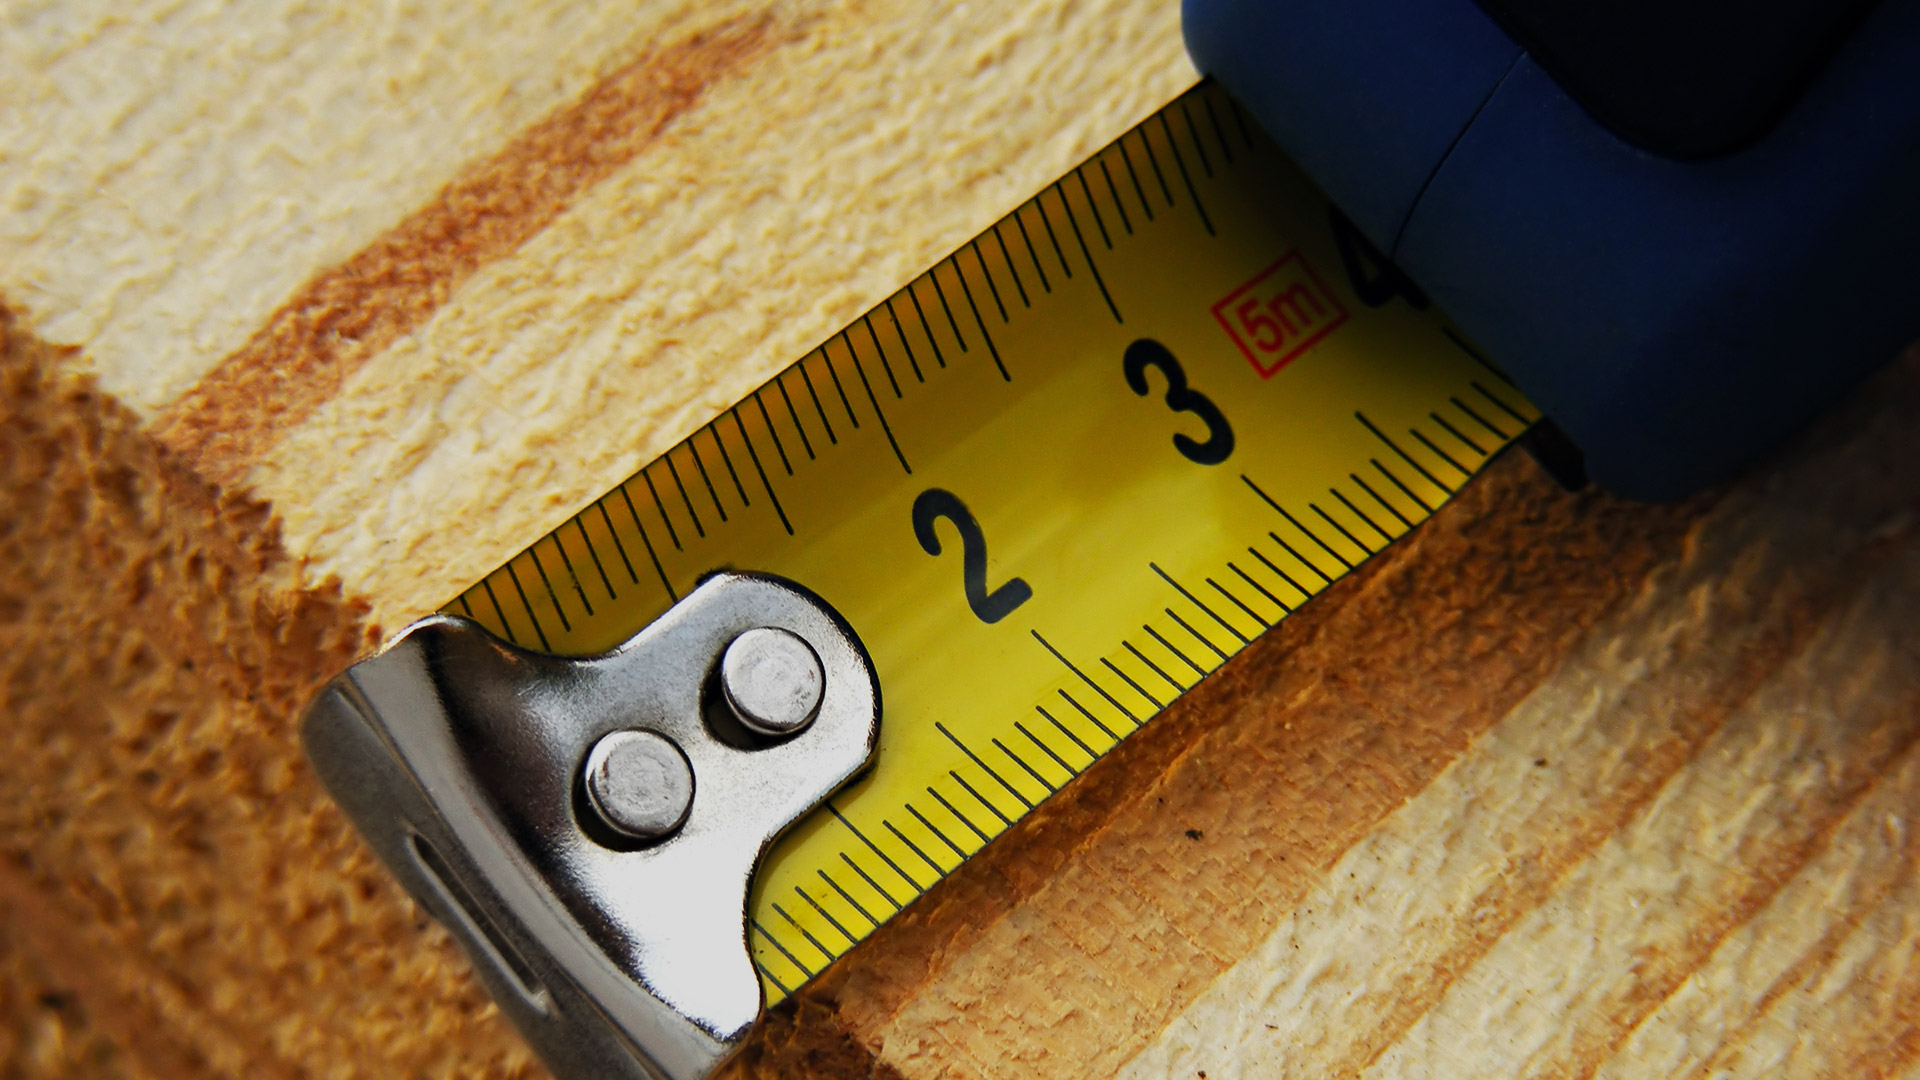 measure-size-ss-1920